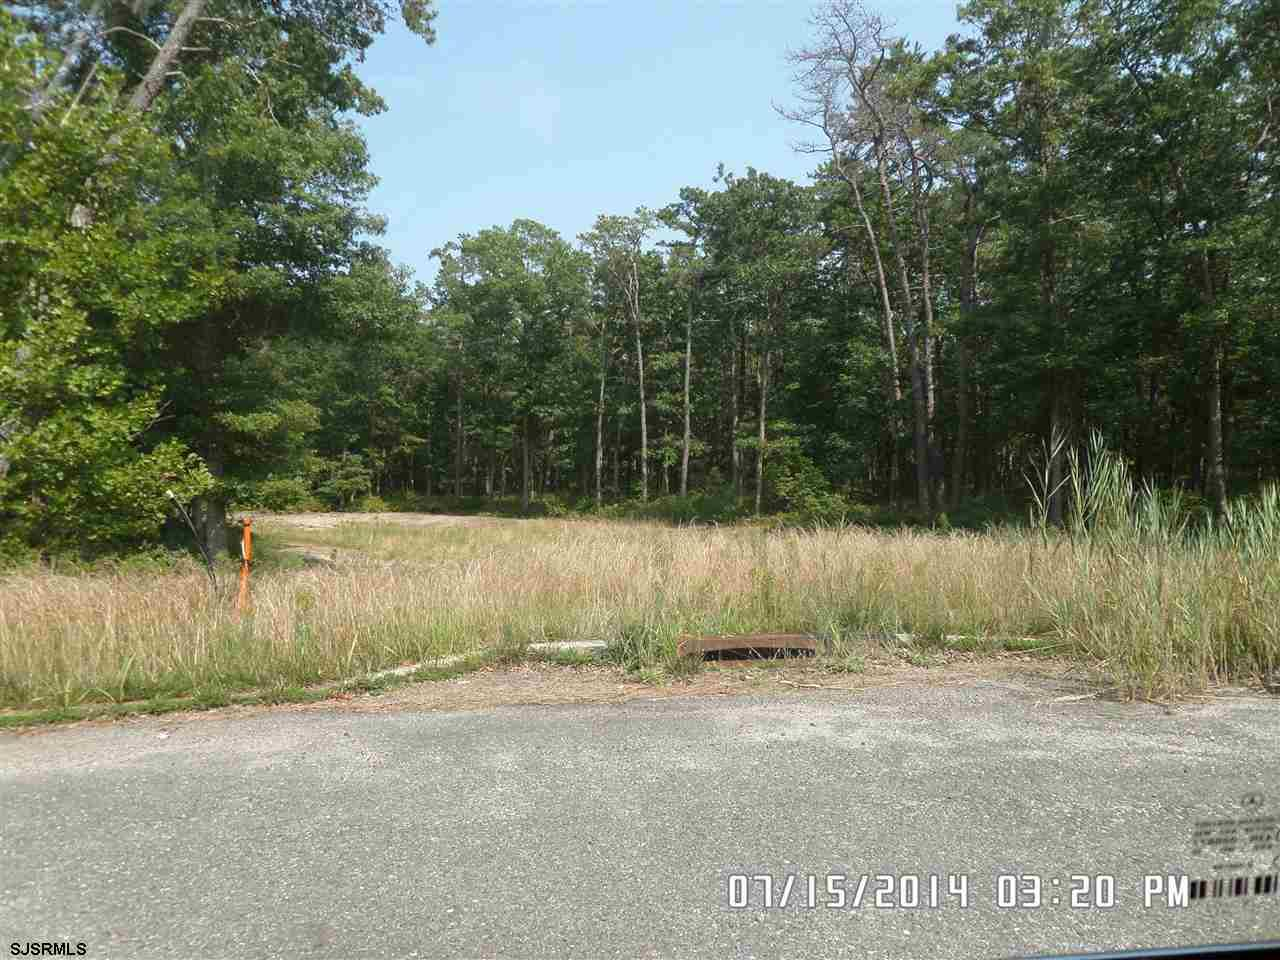 2,7,8,10,11,12, Holly Creek Rd - Photo 1